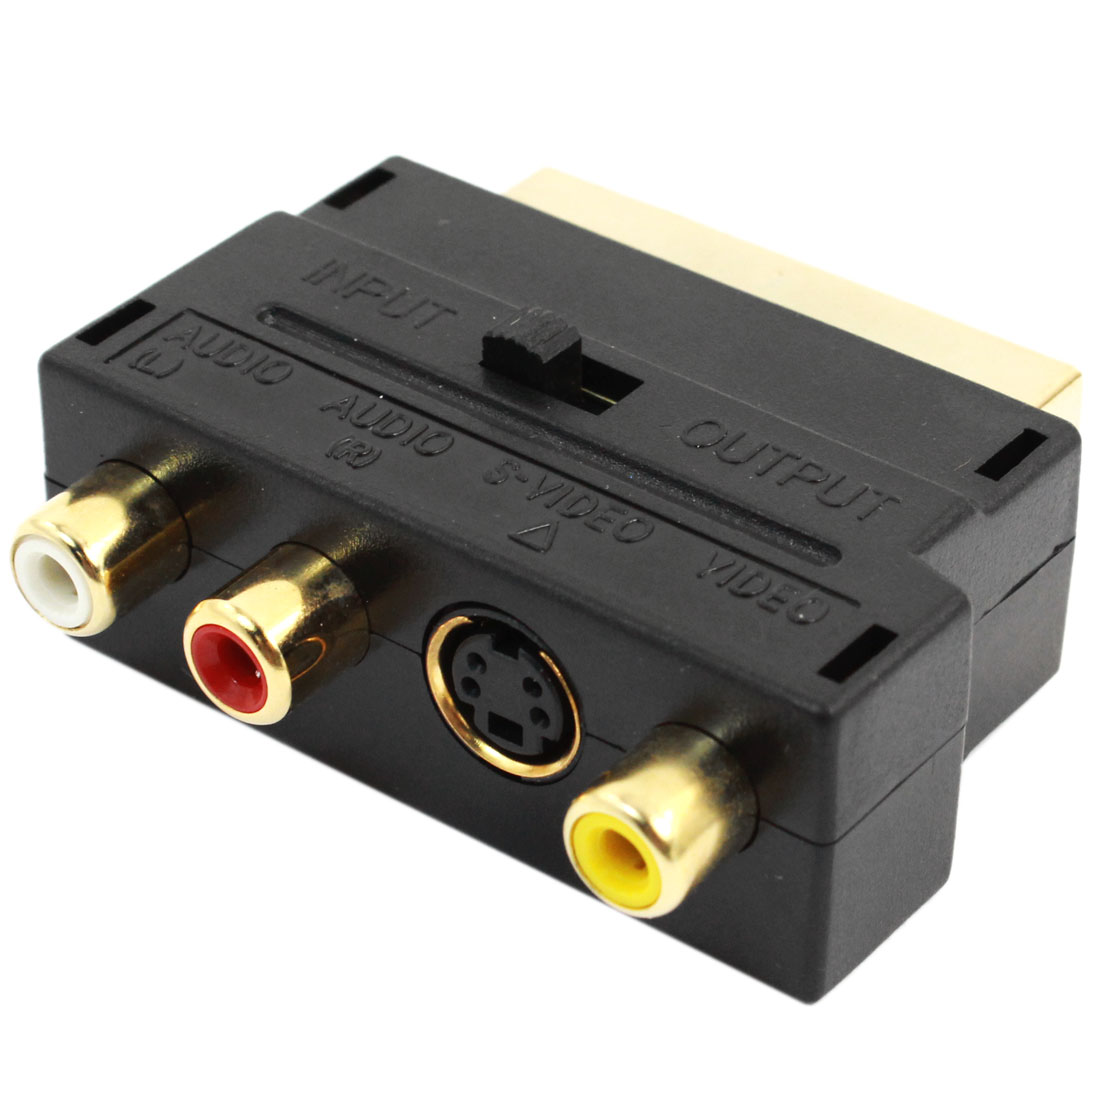 RGB Scart 20 Pin Male to 3 RCA AV Female + S Video Adapter Converter